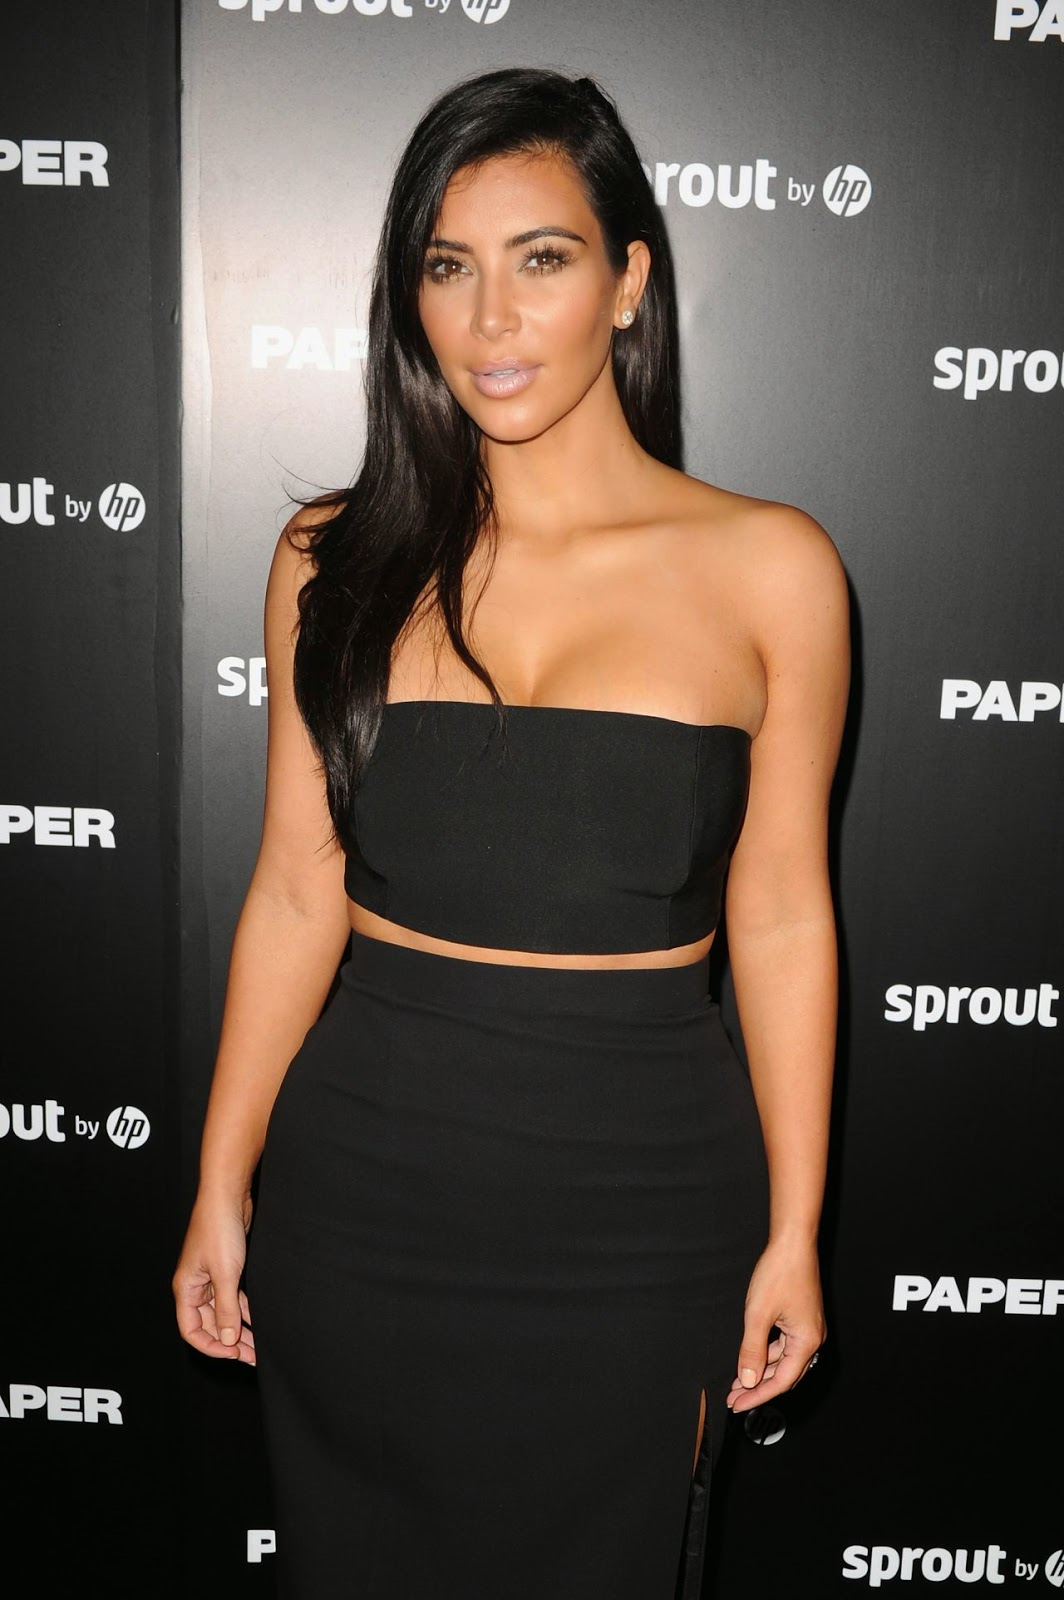 Kim Kardashian wears cropped top and skirt to the launch of her Paper magazine cover in Miami